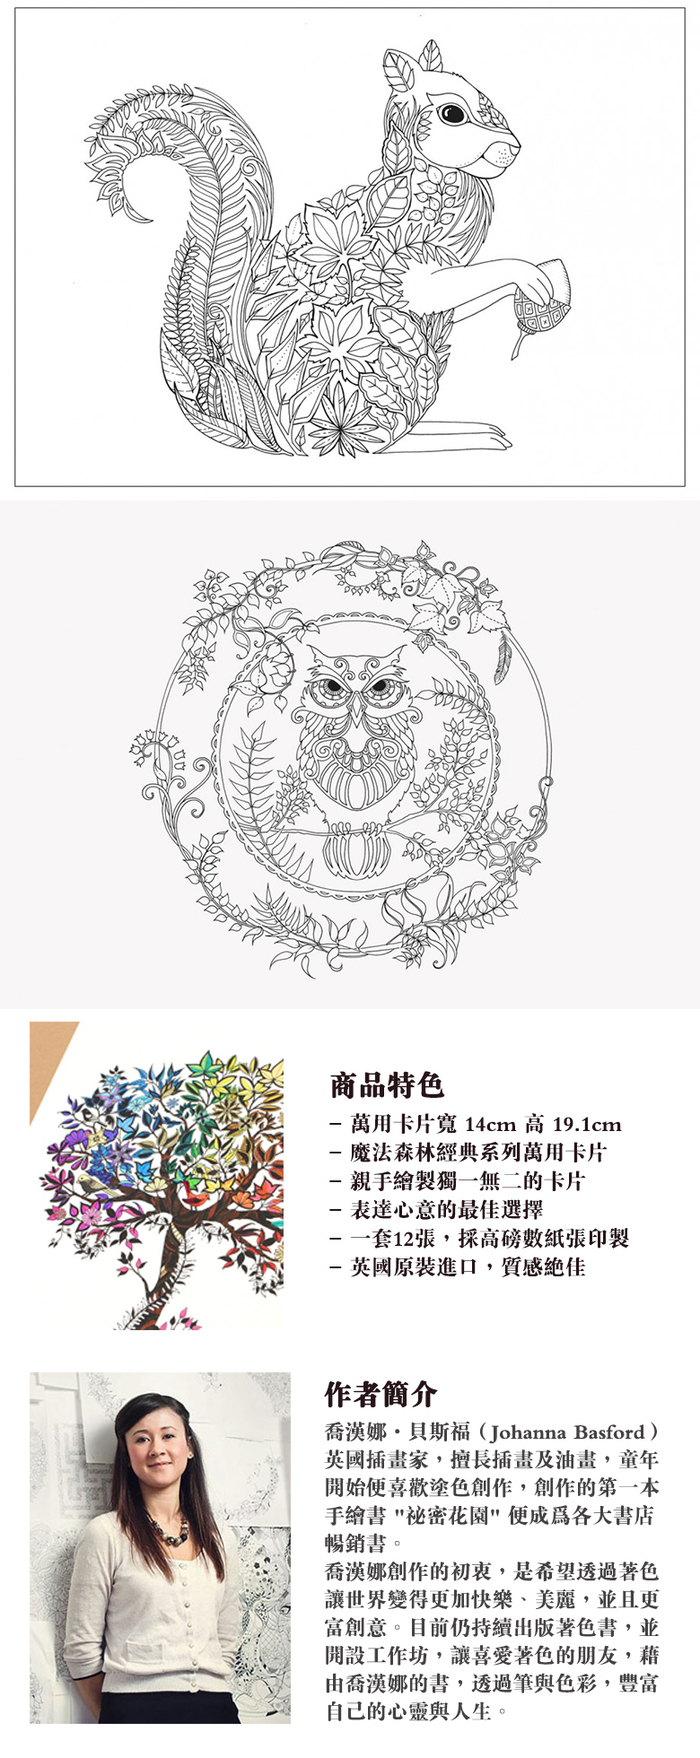 Laurence King Enchanted Forest 魔法森林 - 手繪明信片組(20張)